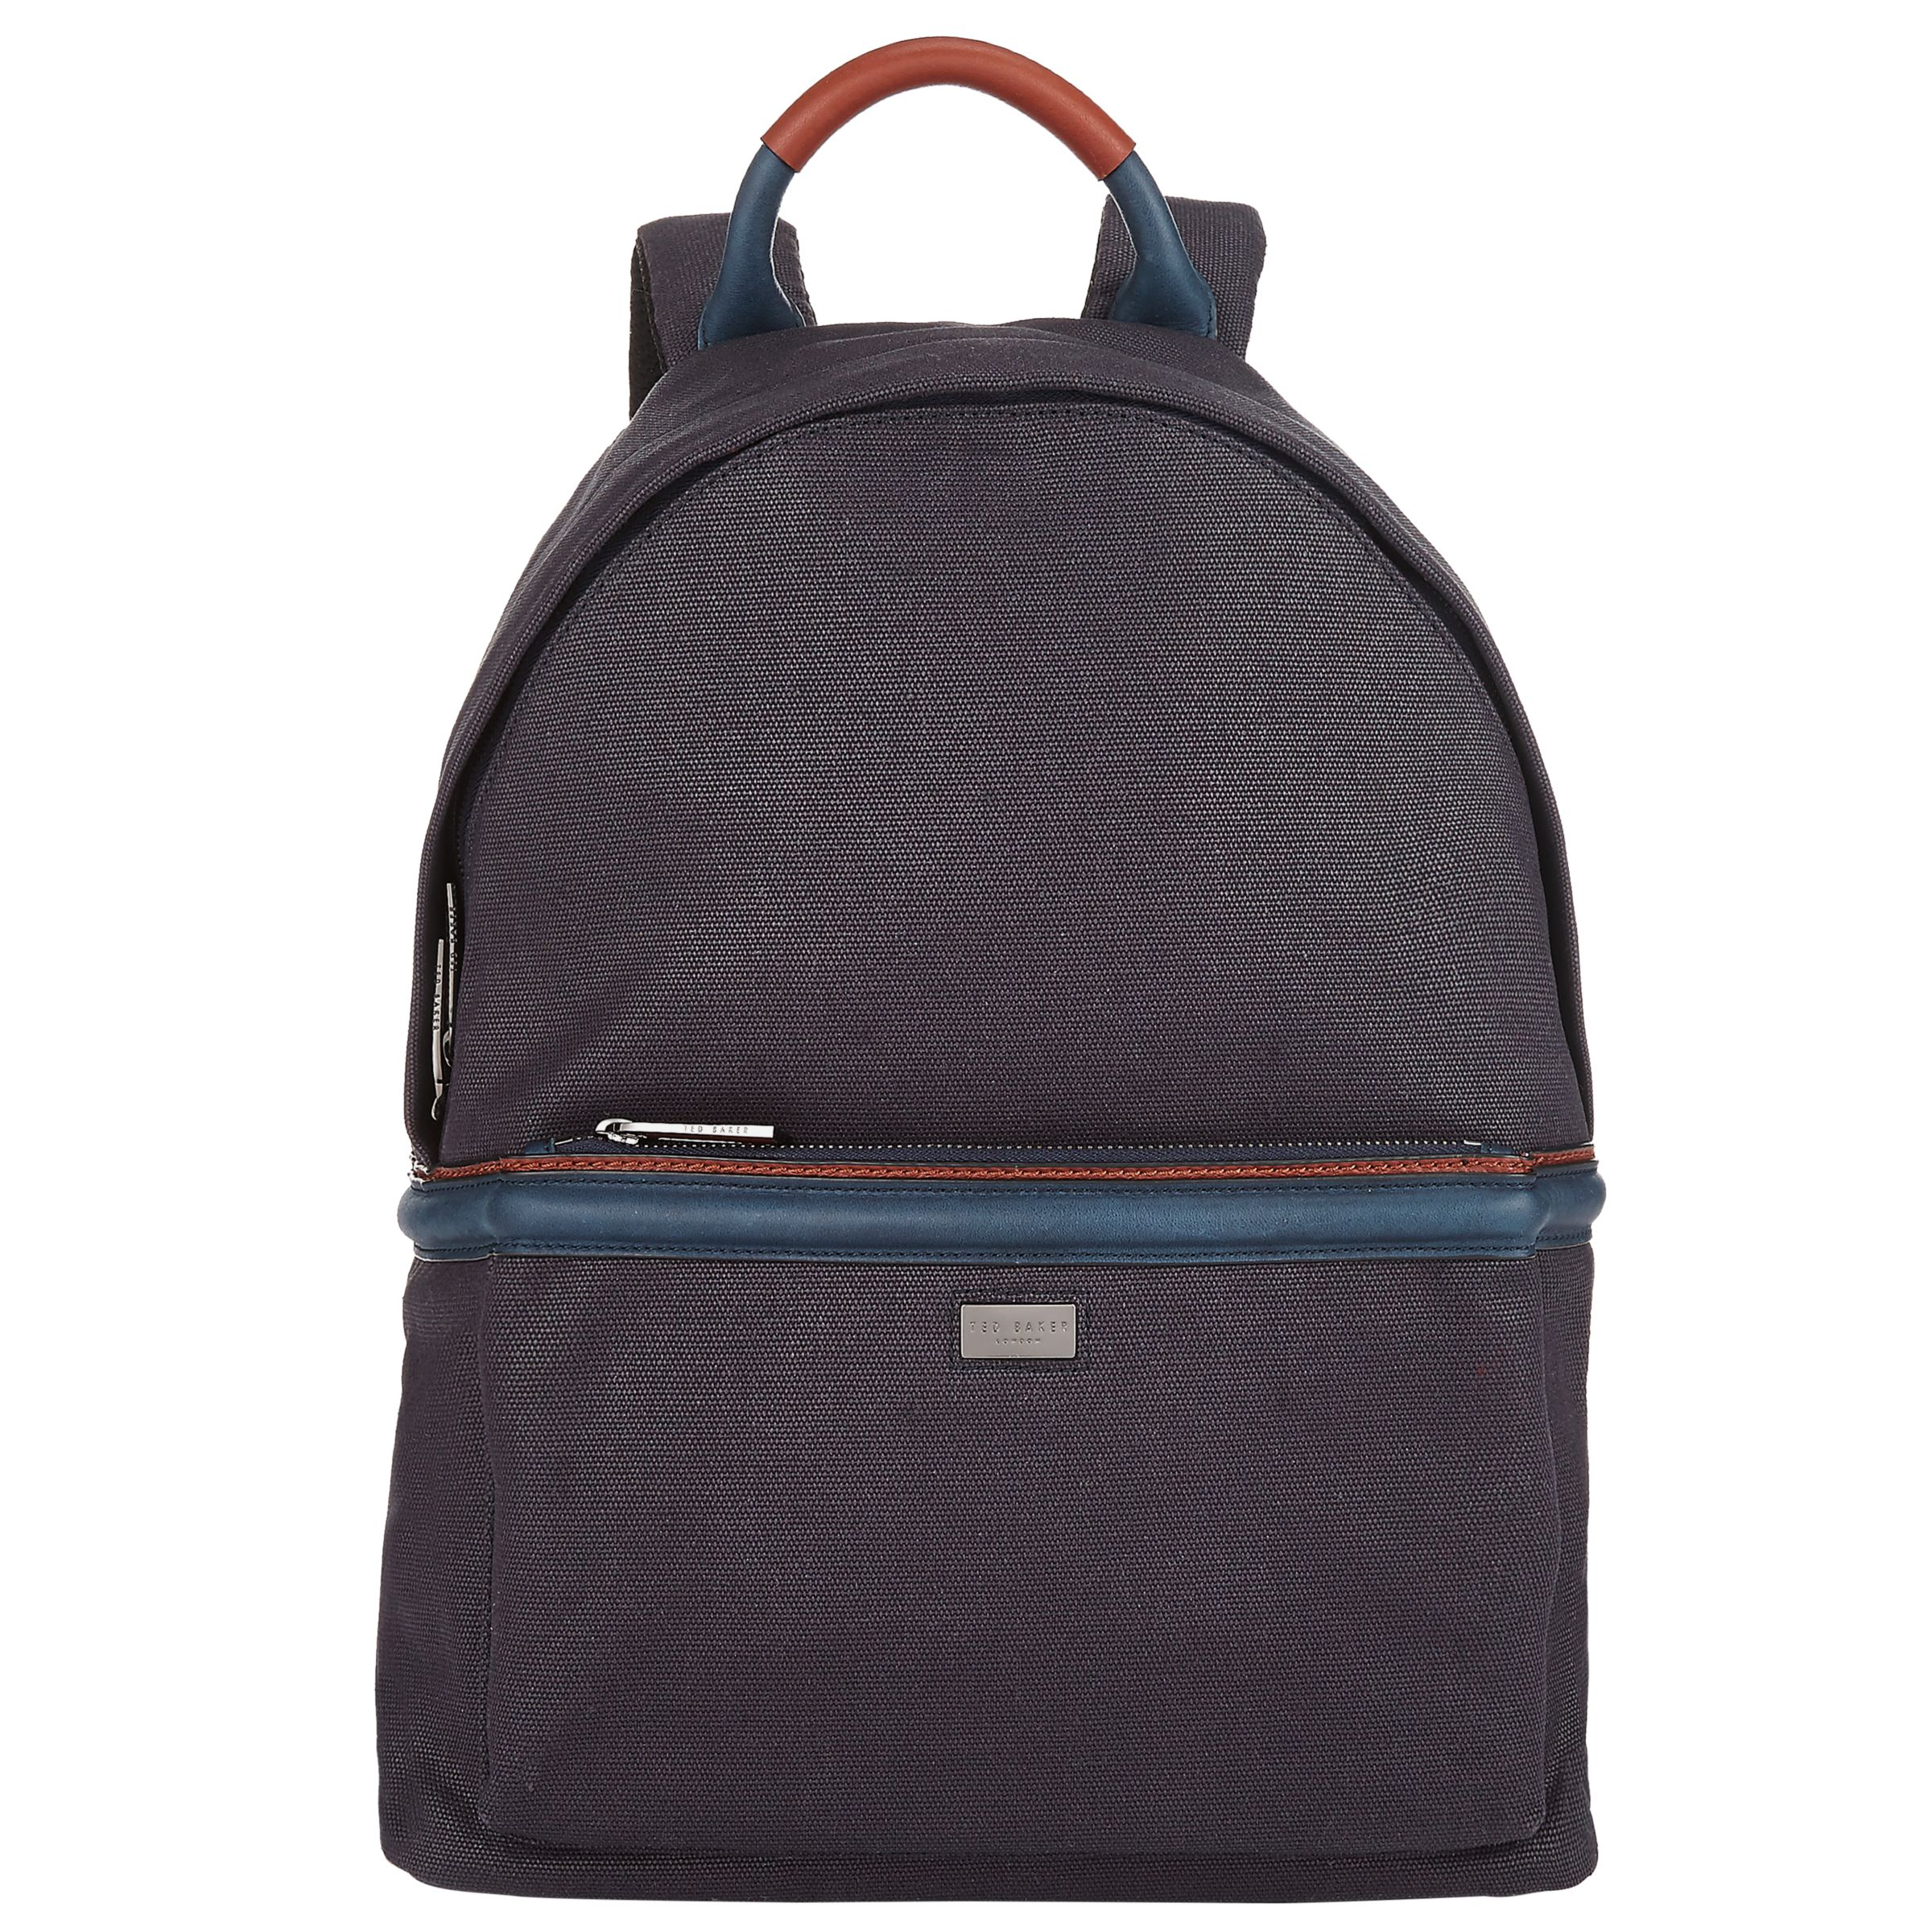 51609557521d9 Ted Baker Brandor Backpack